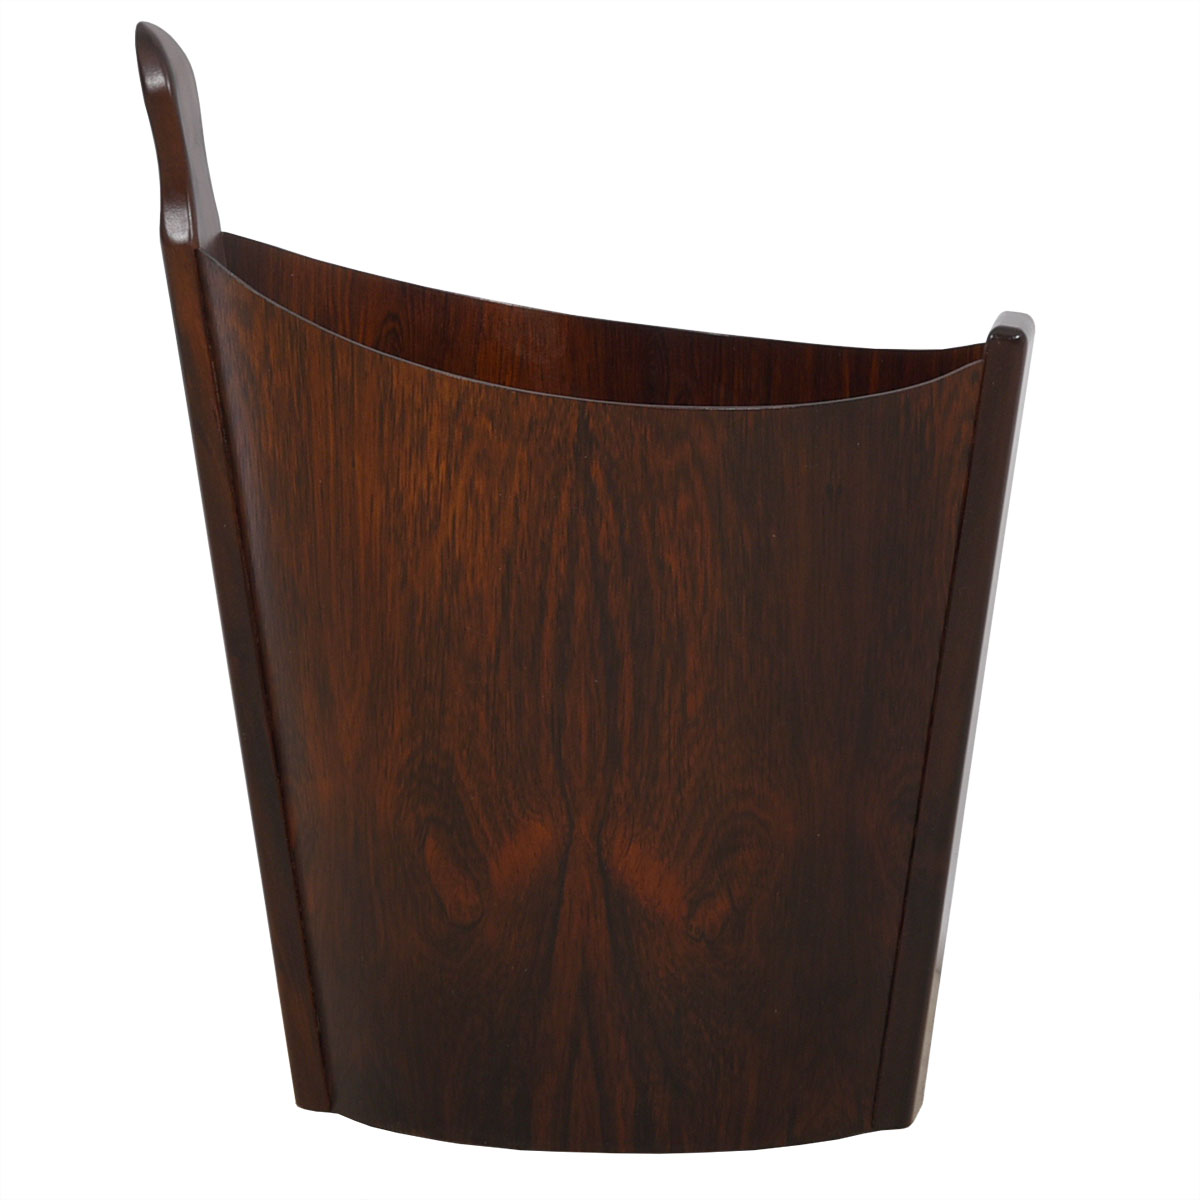 Rare Danish Rosewood Sculptural Waste Basket by Westnofa